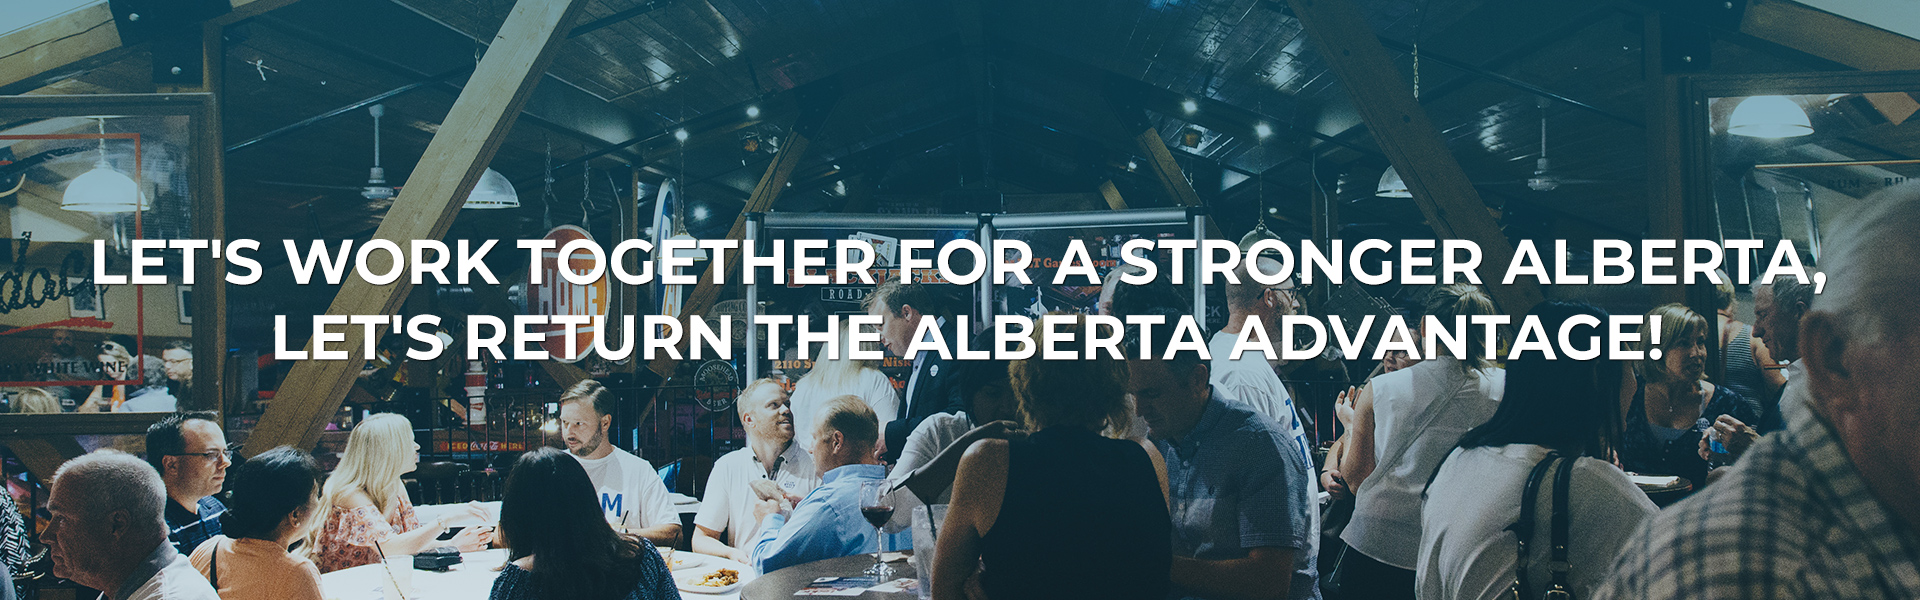 Let's work together for a stronger Alberta, let's return the Alberta Advantage!